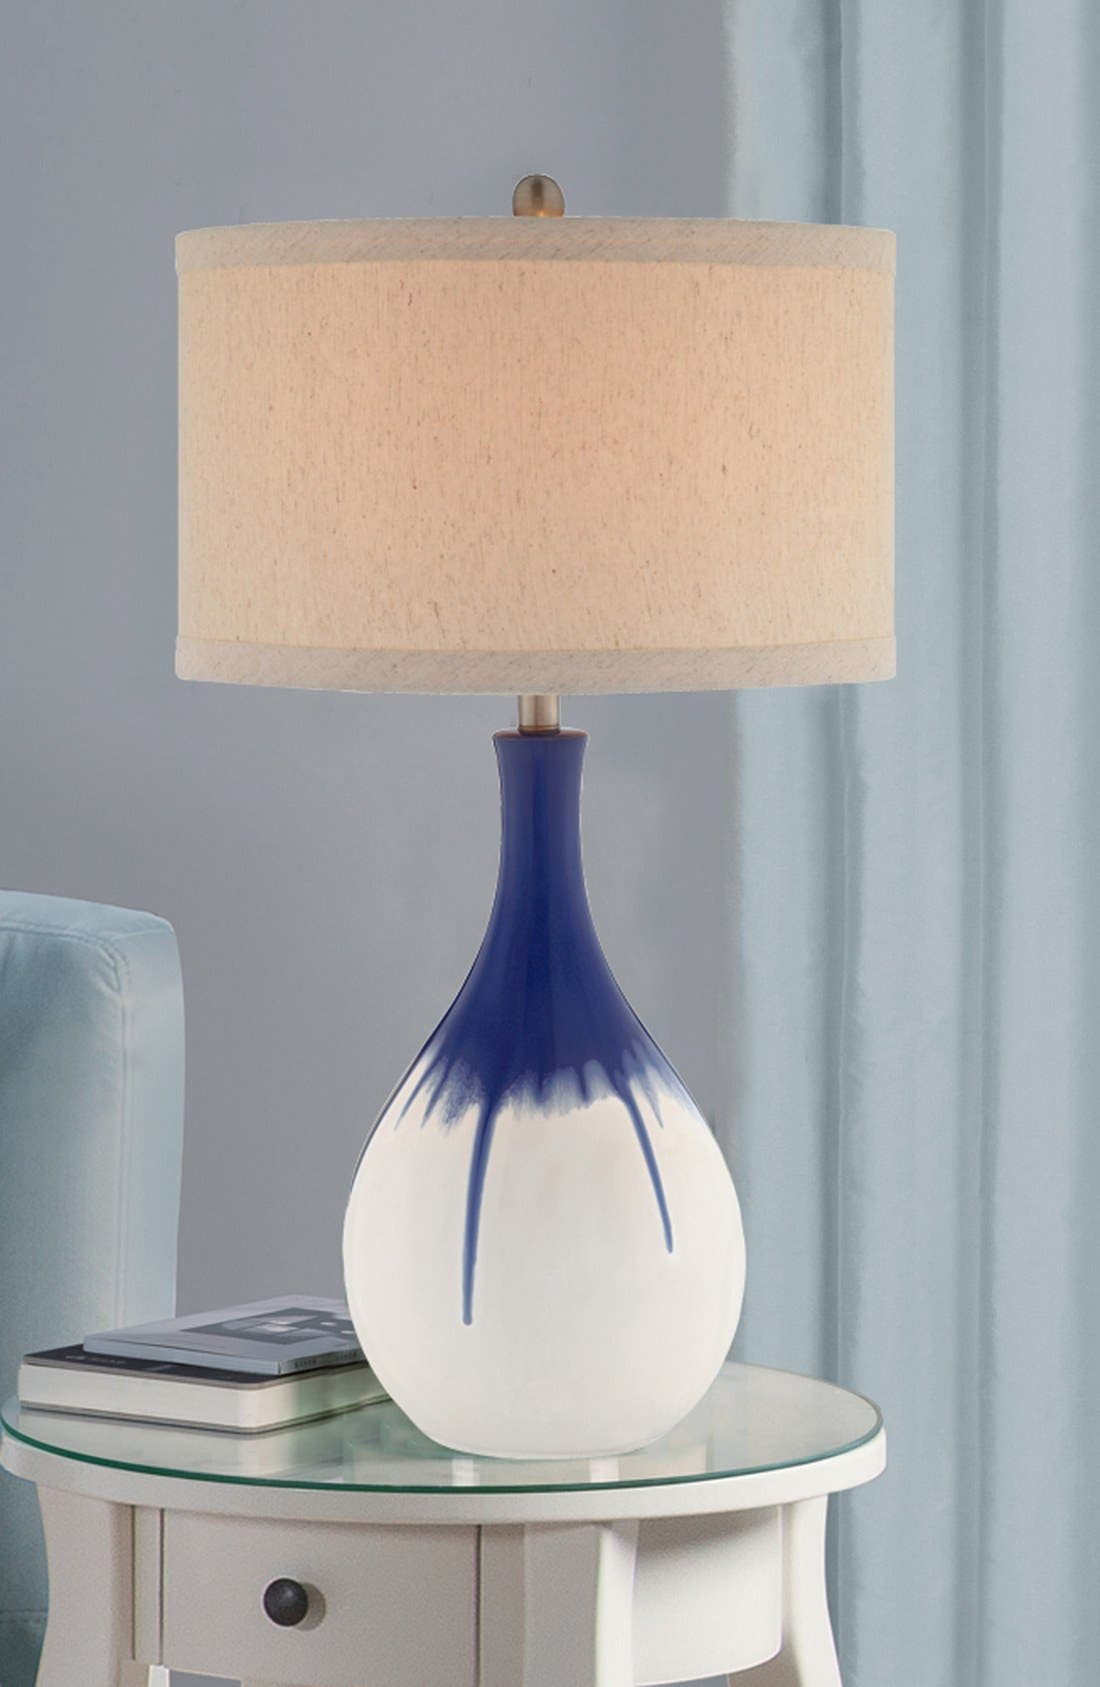 Cobalt Ceramic Table Lamp,                             Alternate thumbnail 2, color,                             400